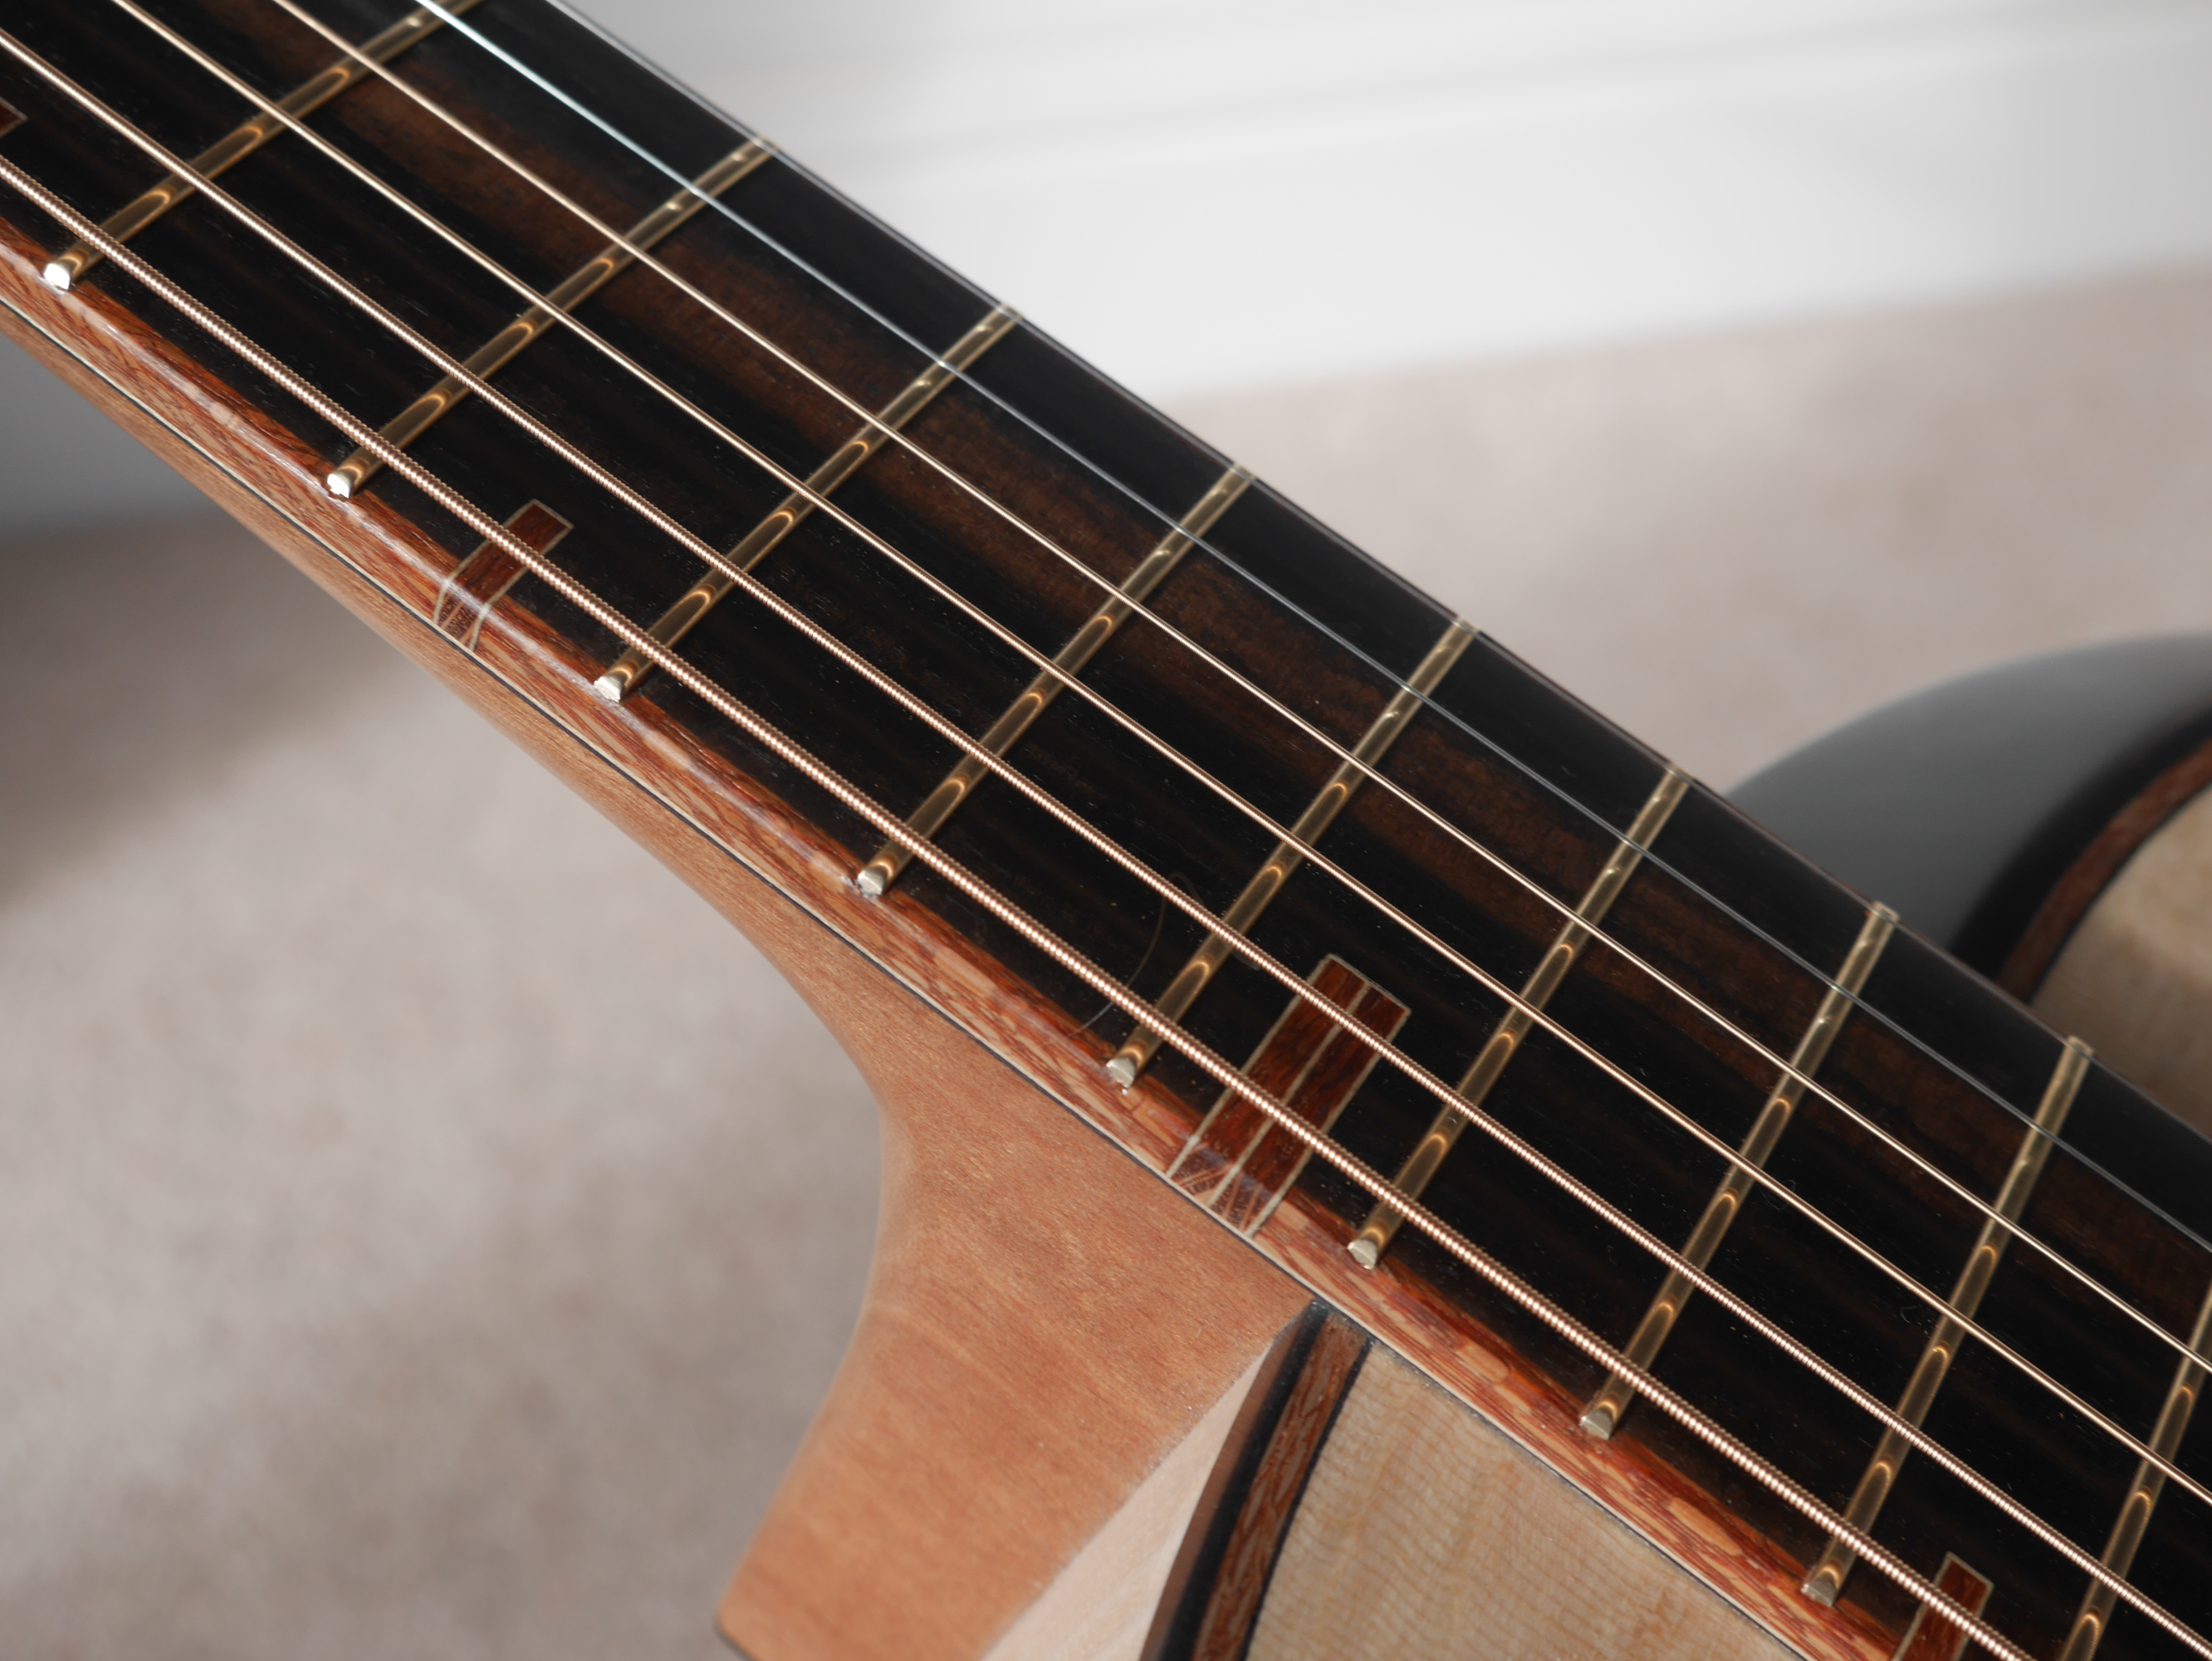 fret markers, acosutic guitar, handmade, custom, inlay, montgomery guitars, northern ireland, carrickfergus